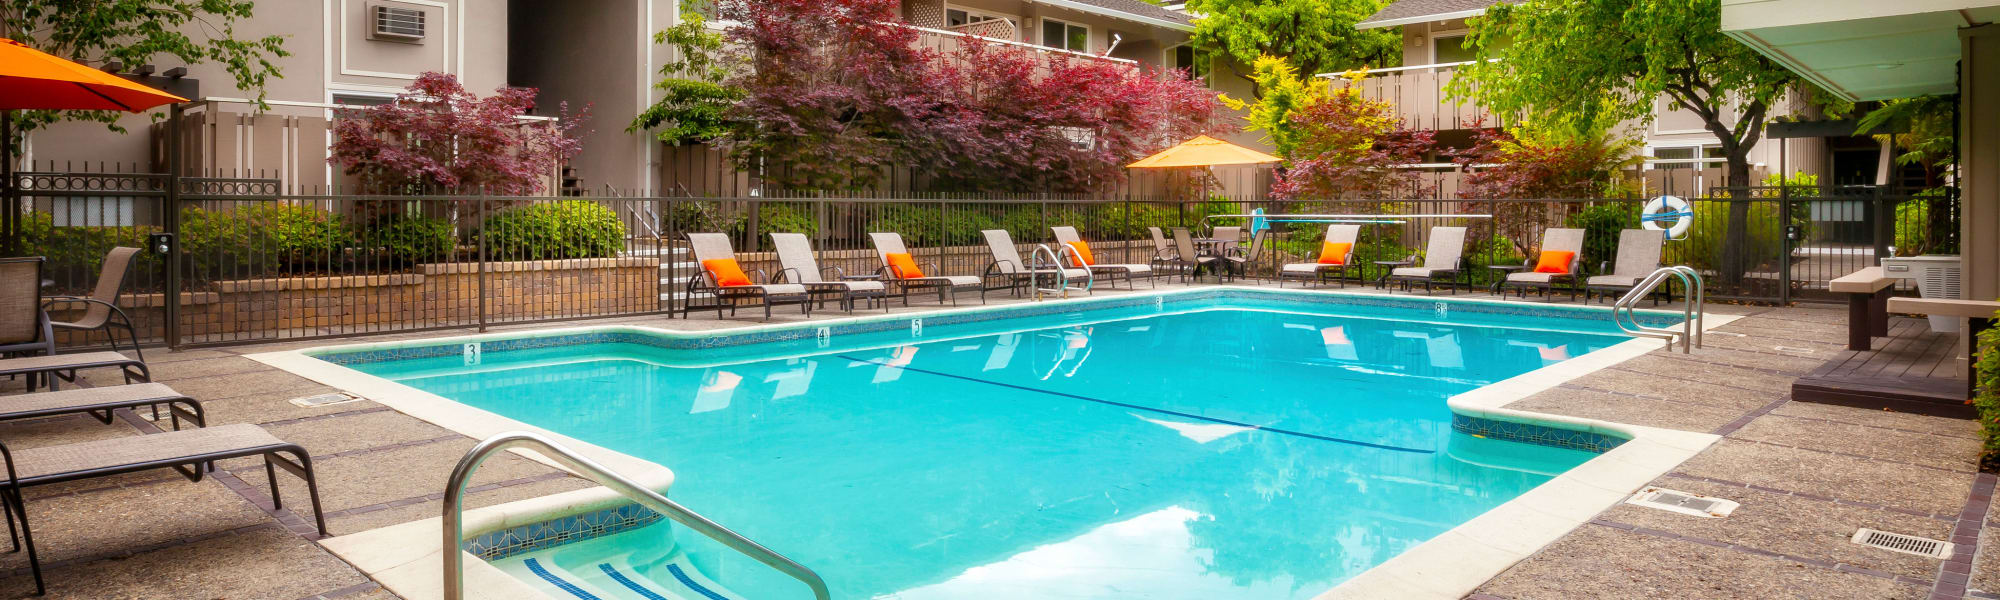 Amenities at Greendale Apartments in Mountain View, California